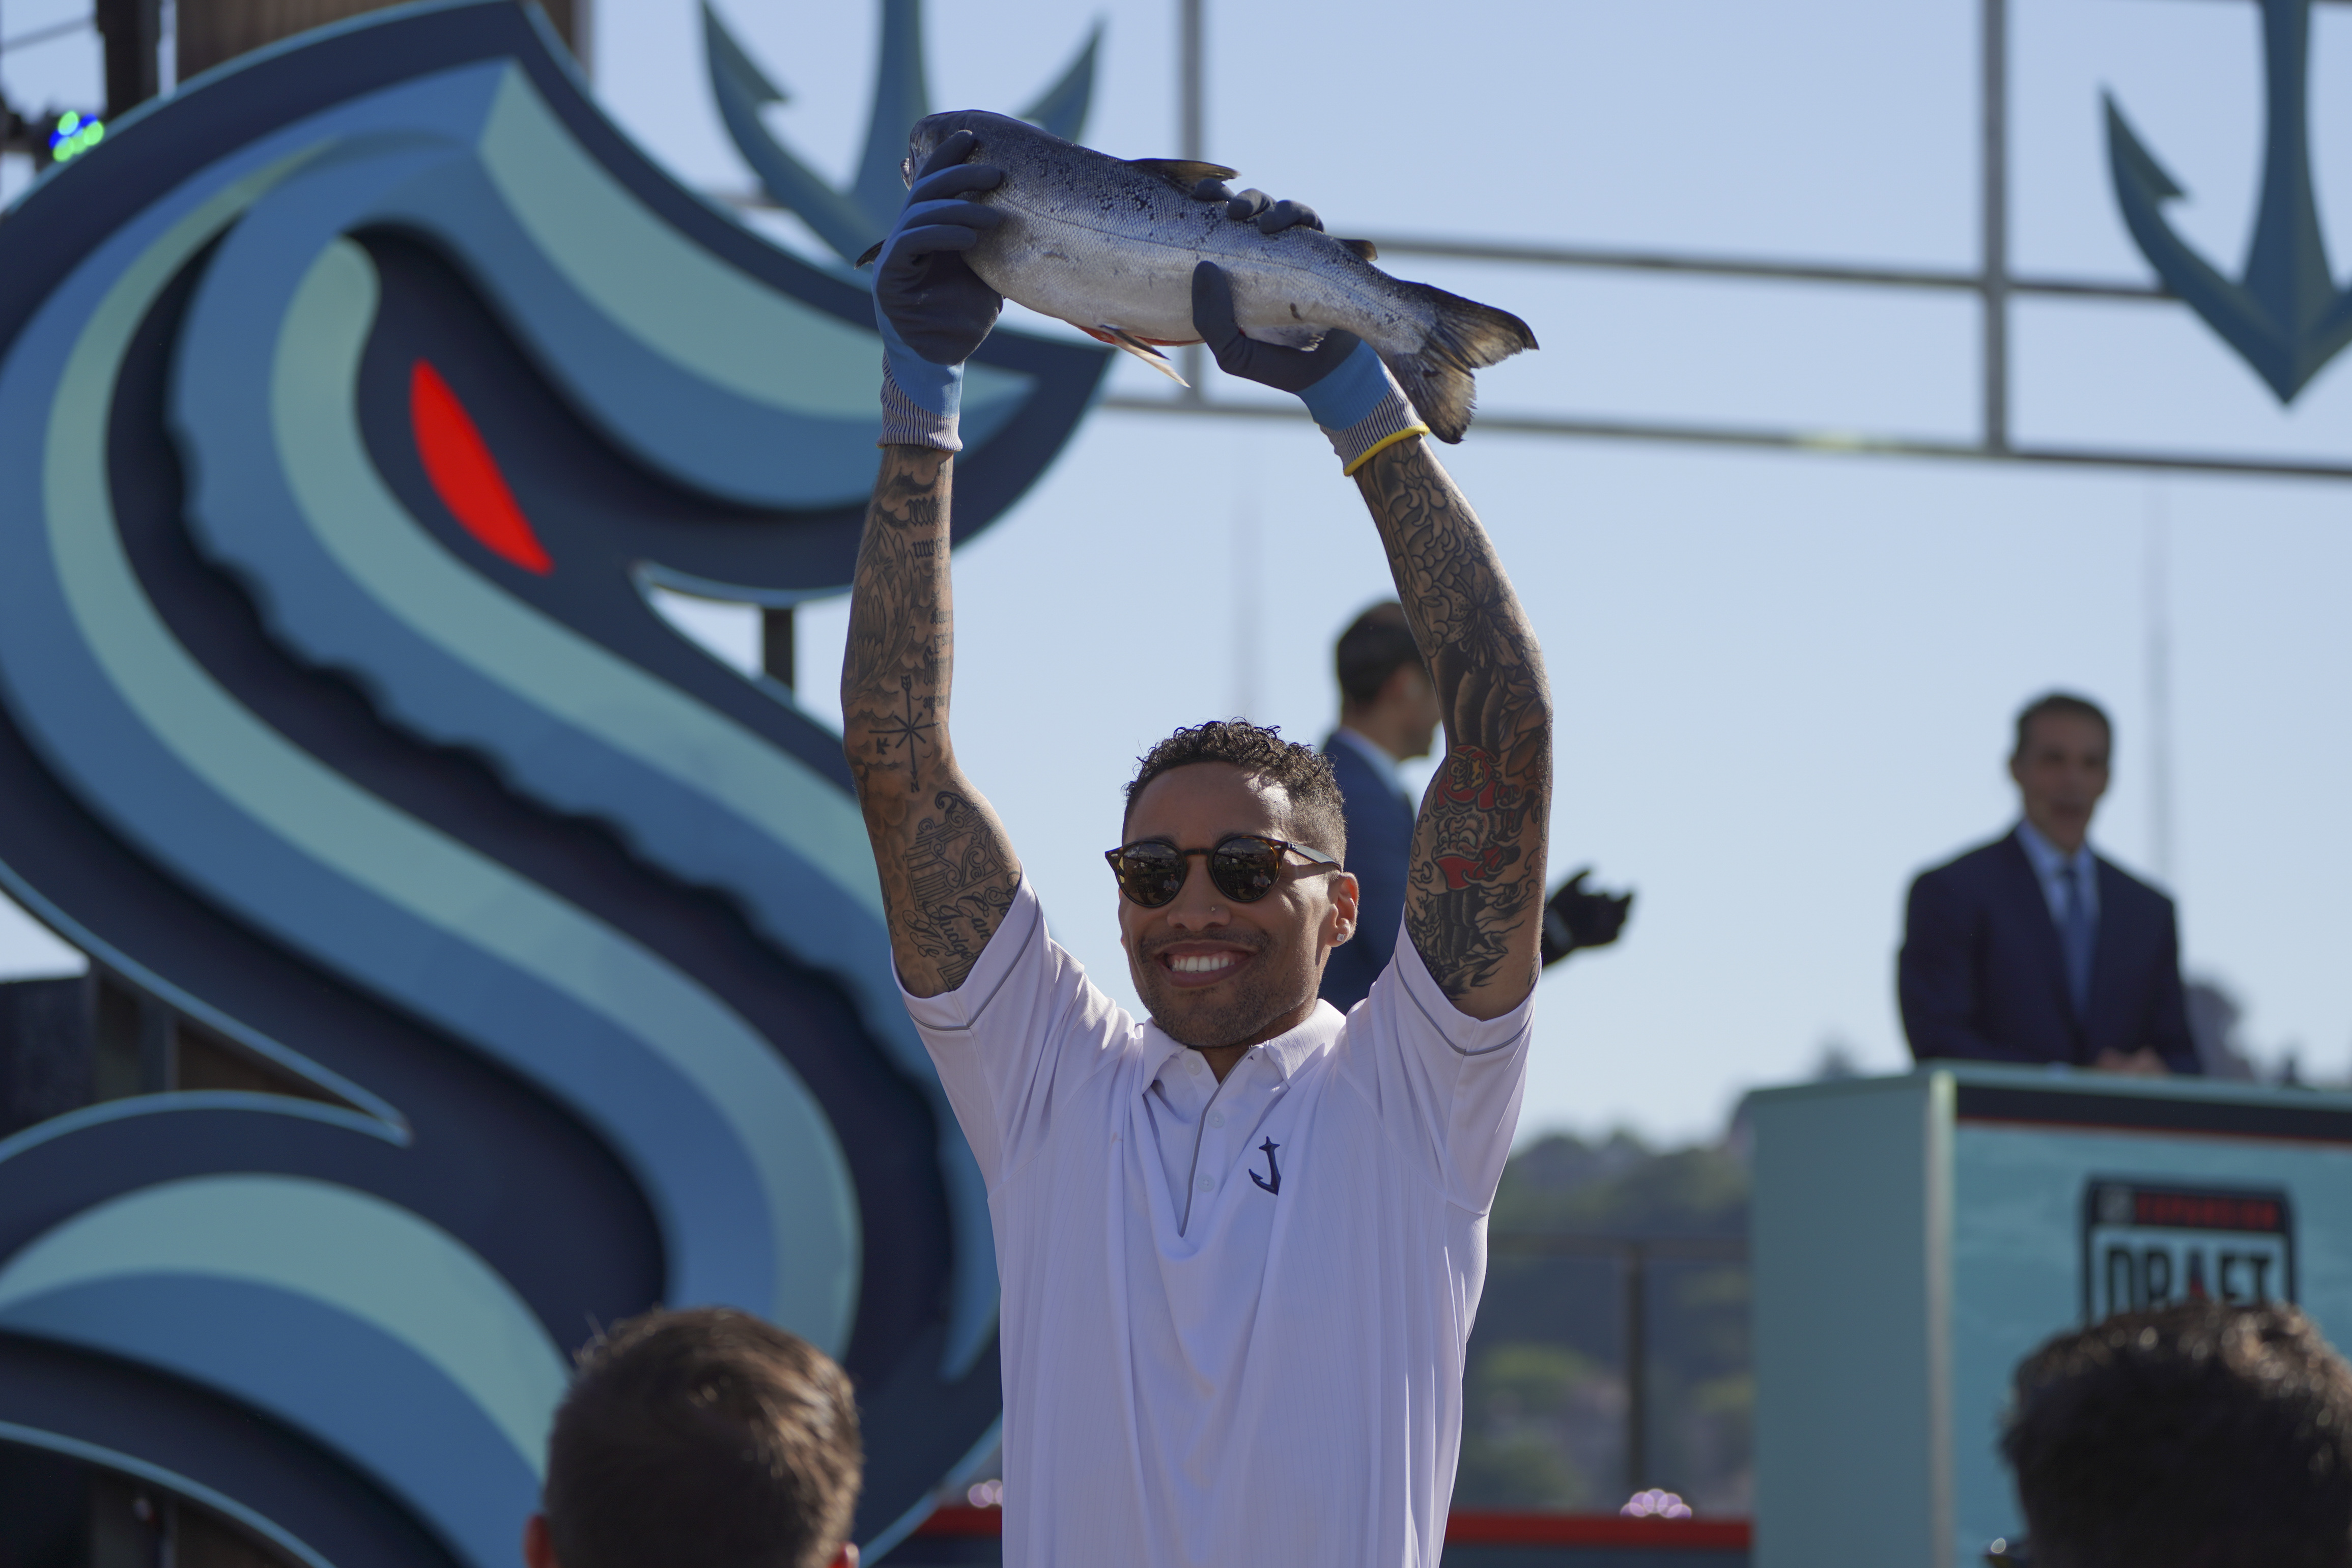 The Seattle Kraken TV color analyst JT Brown shows off his nice catch of a Pike Place Market salmon during the NHL-Seattle Kraken expansion draft July 21, 2021 at Gas Works Park in Seattle, WA